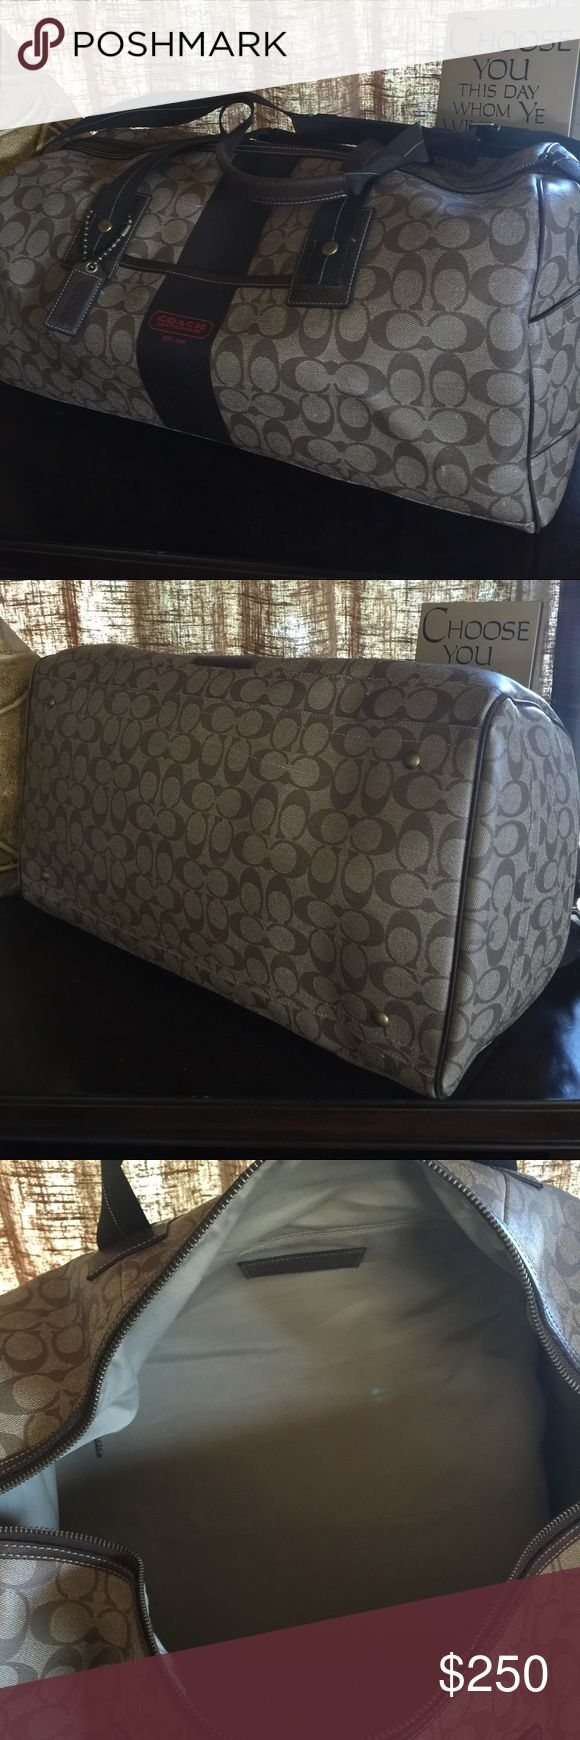 Authentic Coach Duffle bag Used but in great condition Duffle bag. Had a small stain inside but it's light . Coach Bags Travel Bags